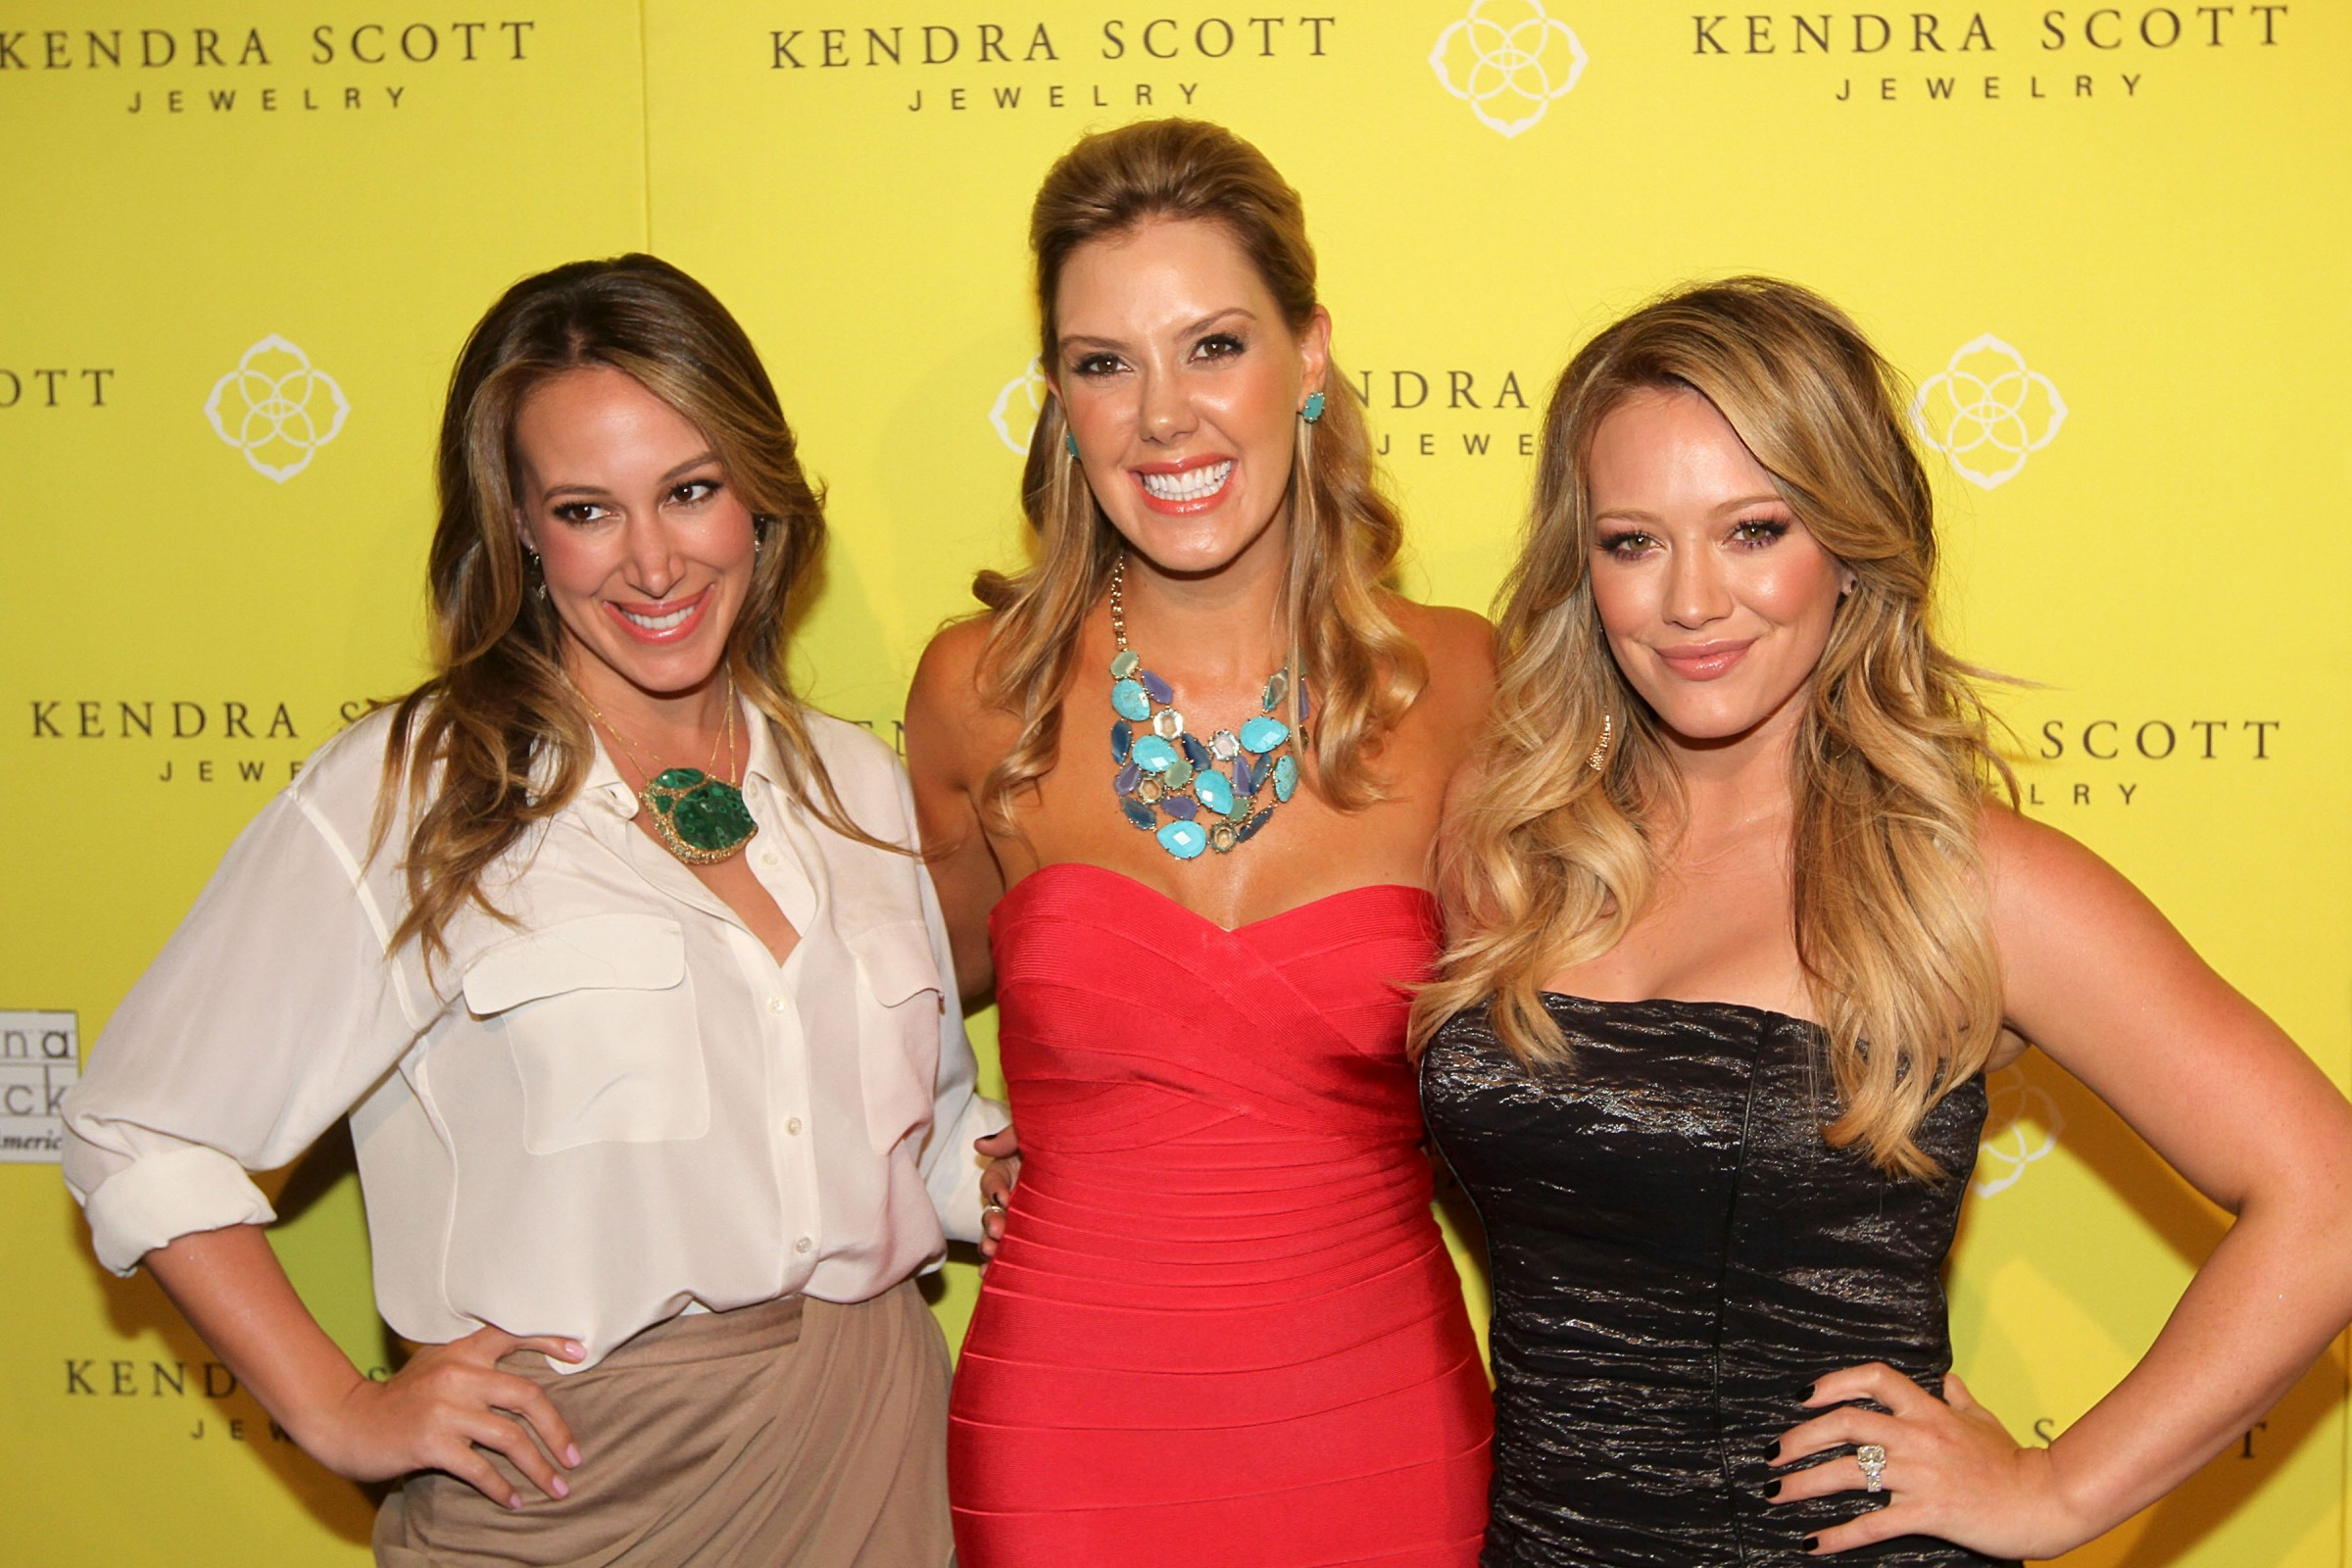 Kendra Scott HD Wallpapers & Pictures